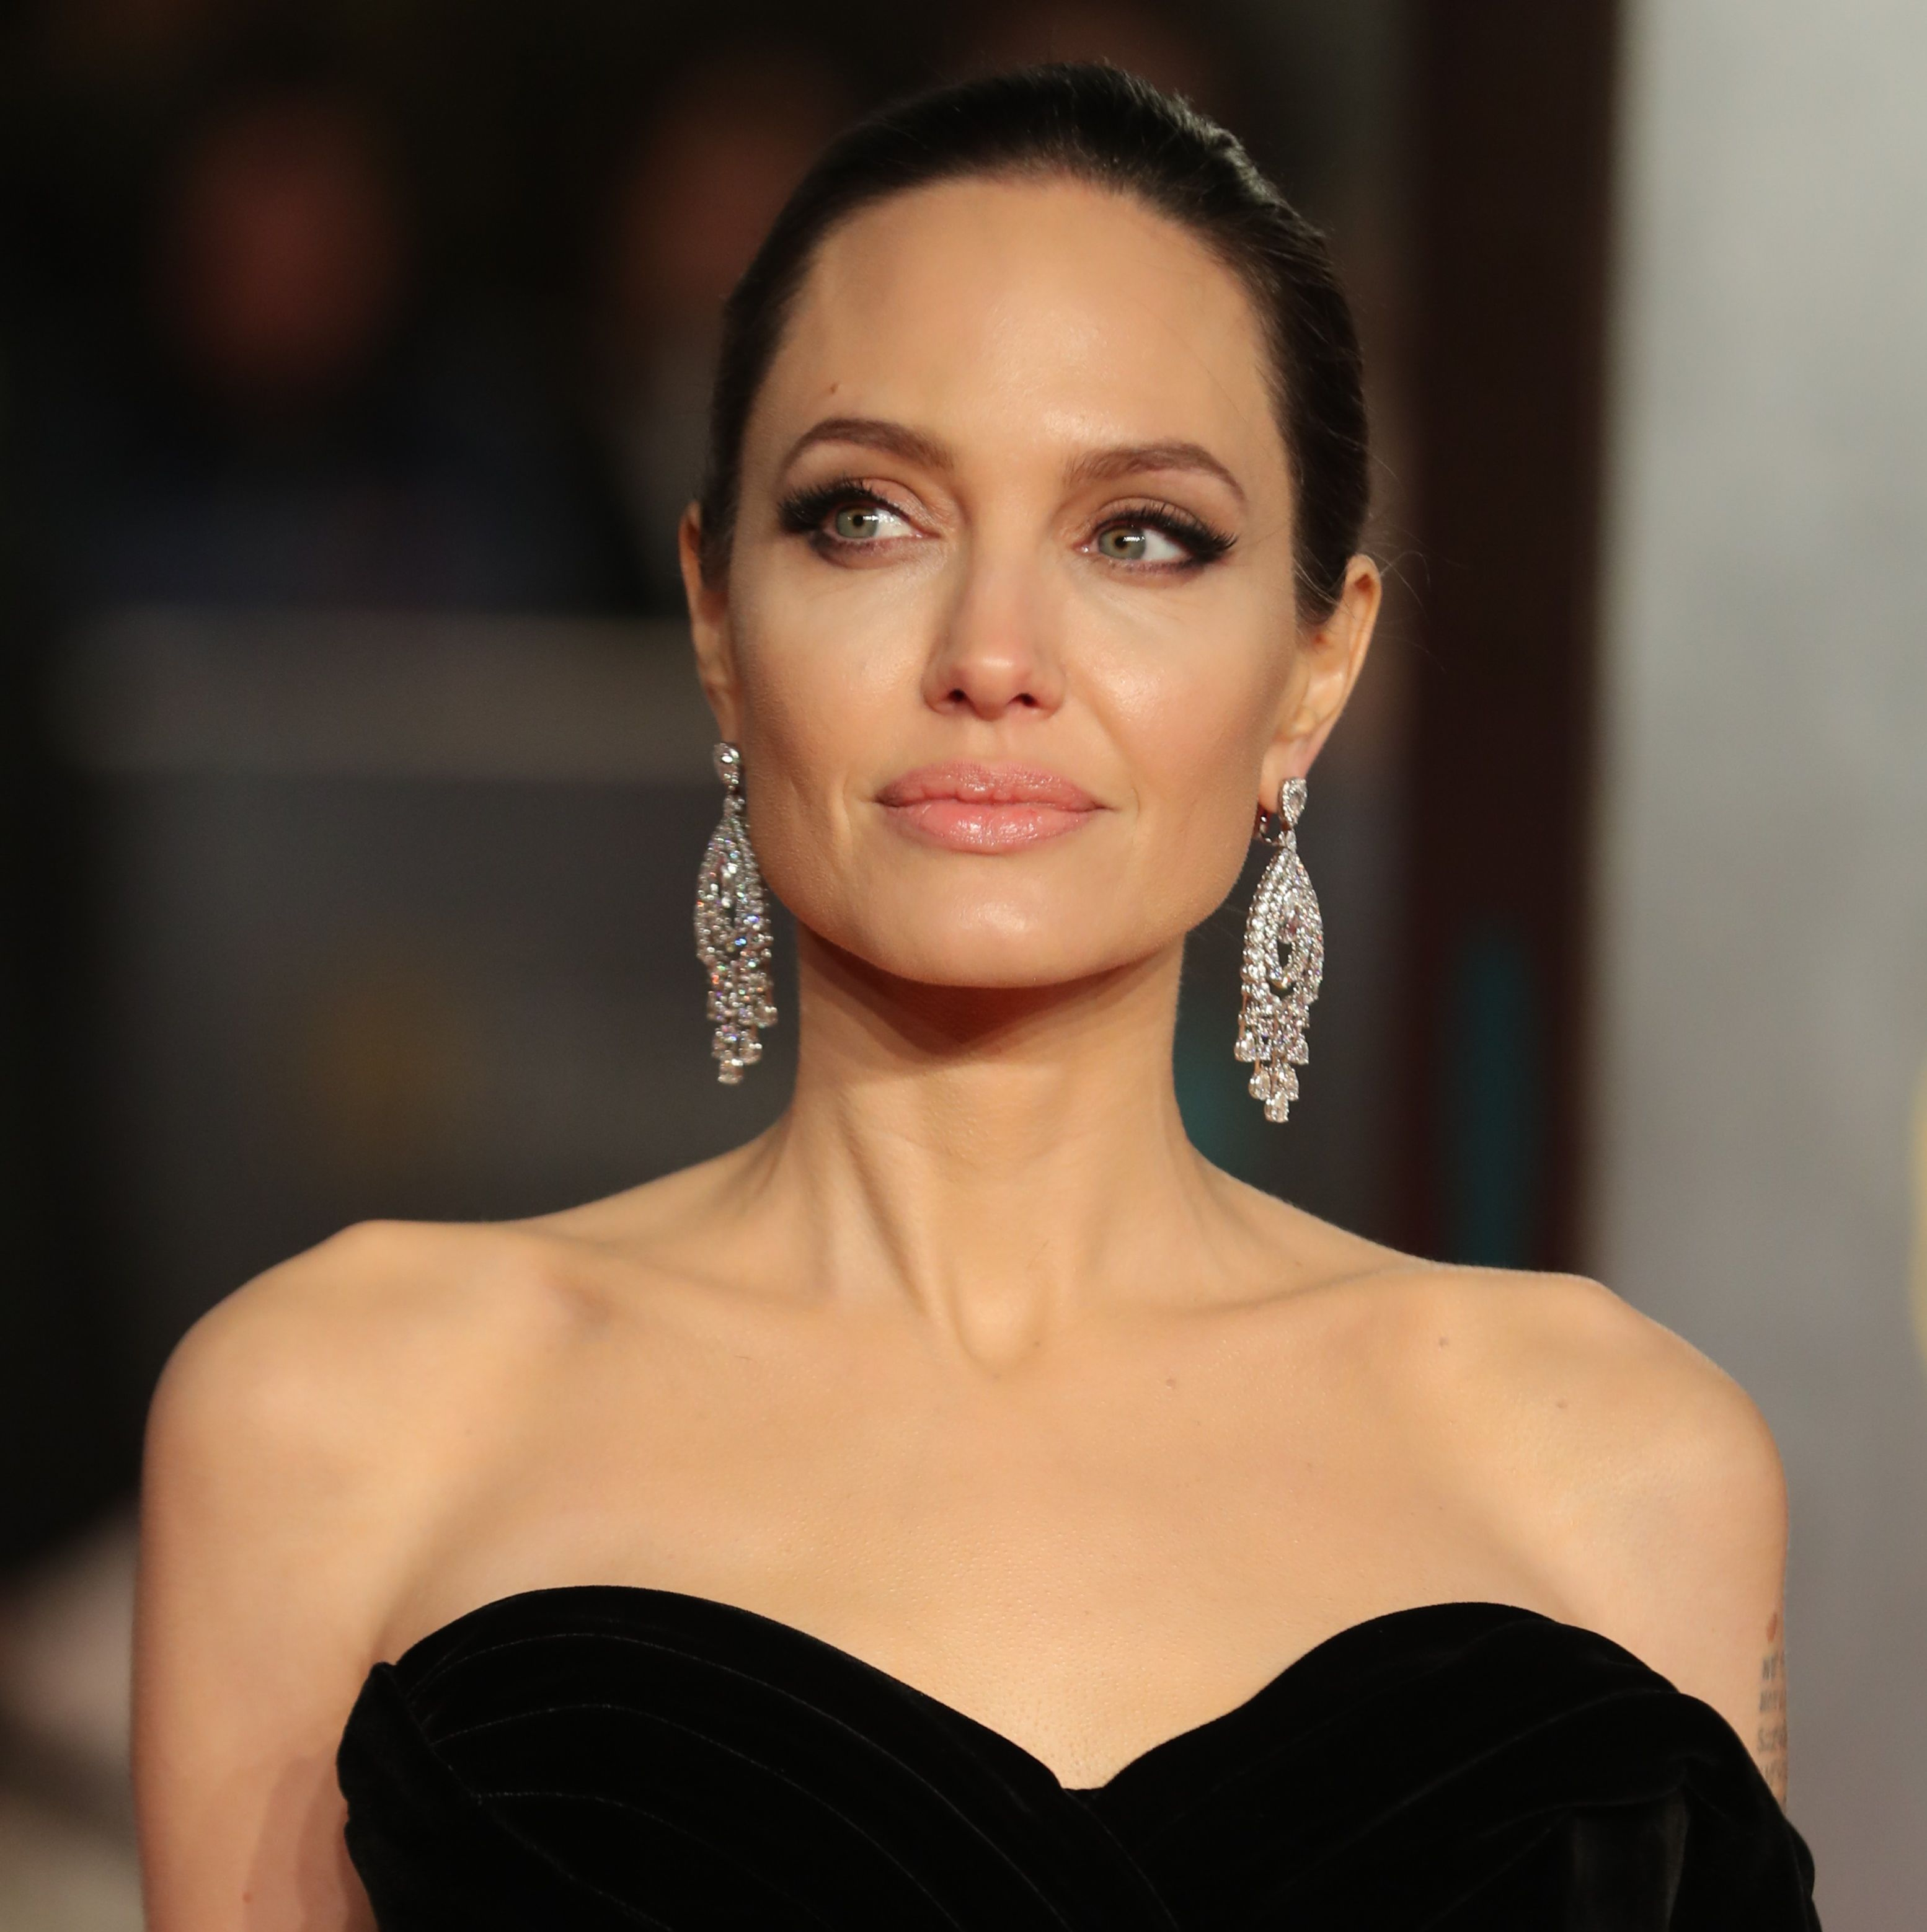 """""""I didn't know where to put myself."""" """"I was raised in a place where if you have fame and money and you're decent-looking and have the ability to work in this industry, you have everything in the world,"""" Angelina Jolie explained to the Wall Street Journal in November 2015 about the depression she felt when she was younger. """"Then you attain those things and realize you still couldn't be more empty. I didn't know where to put myself."""""""